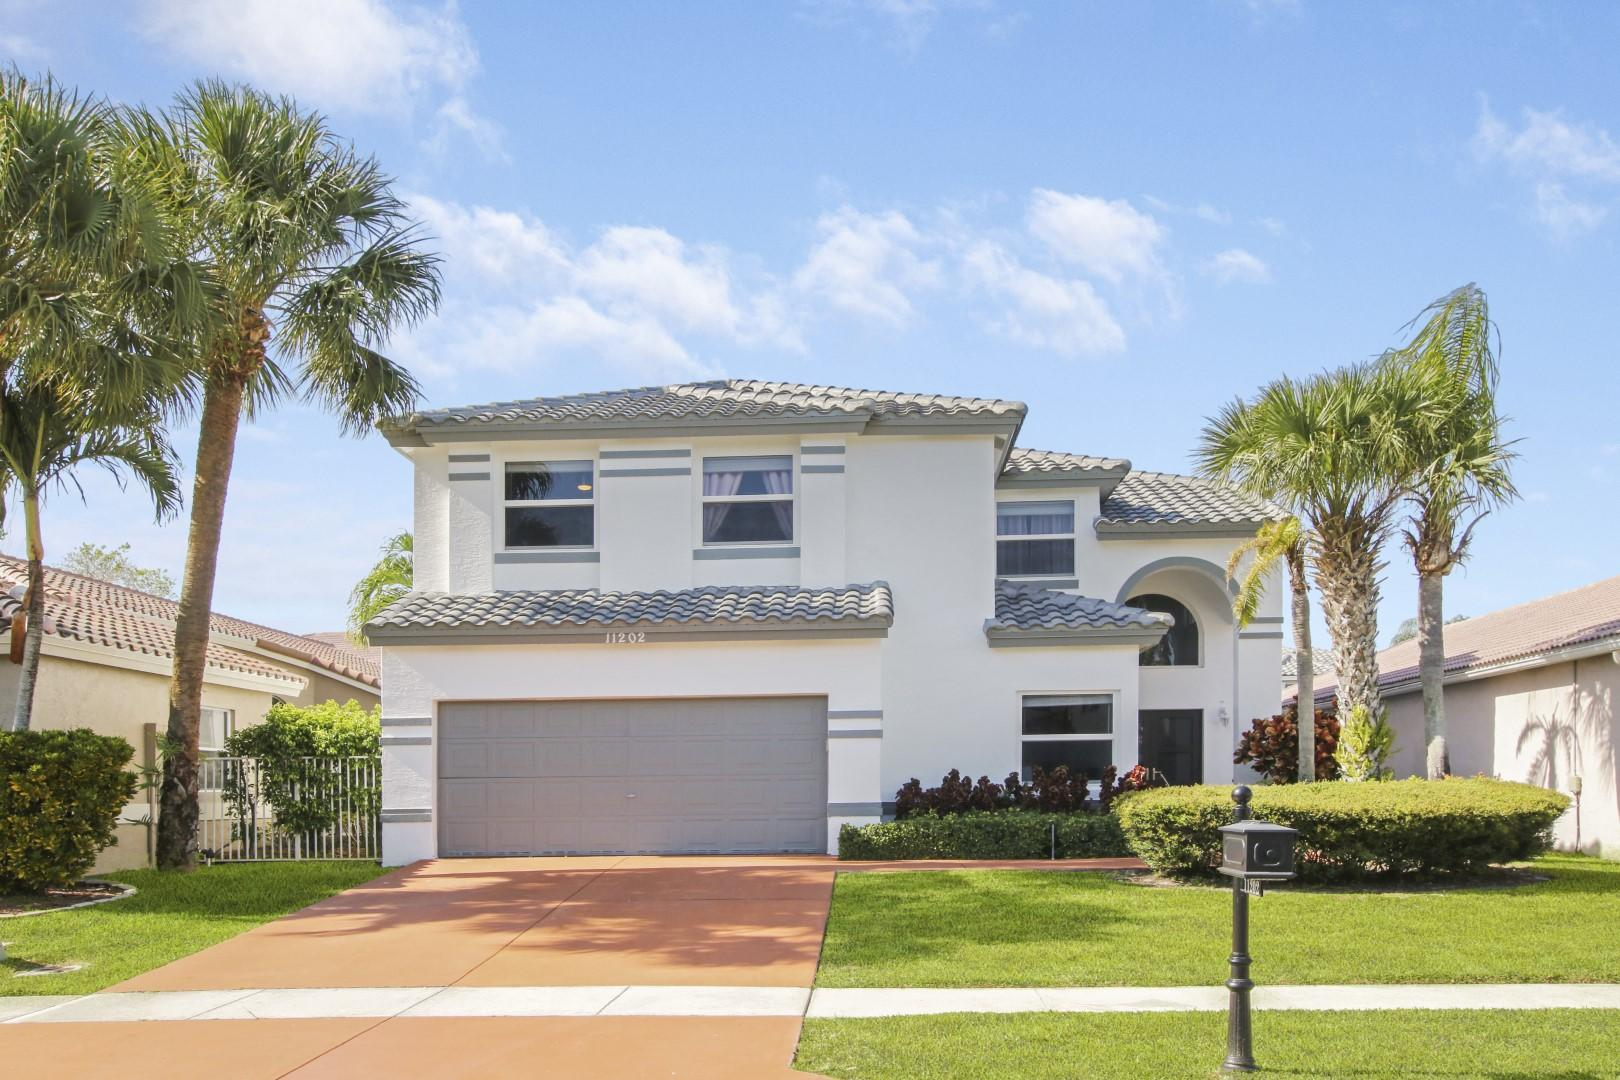 11202  Harbour Springs Circle  For Sale 10720388, FL